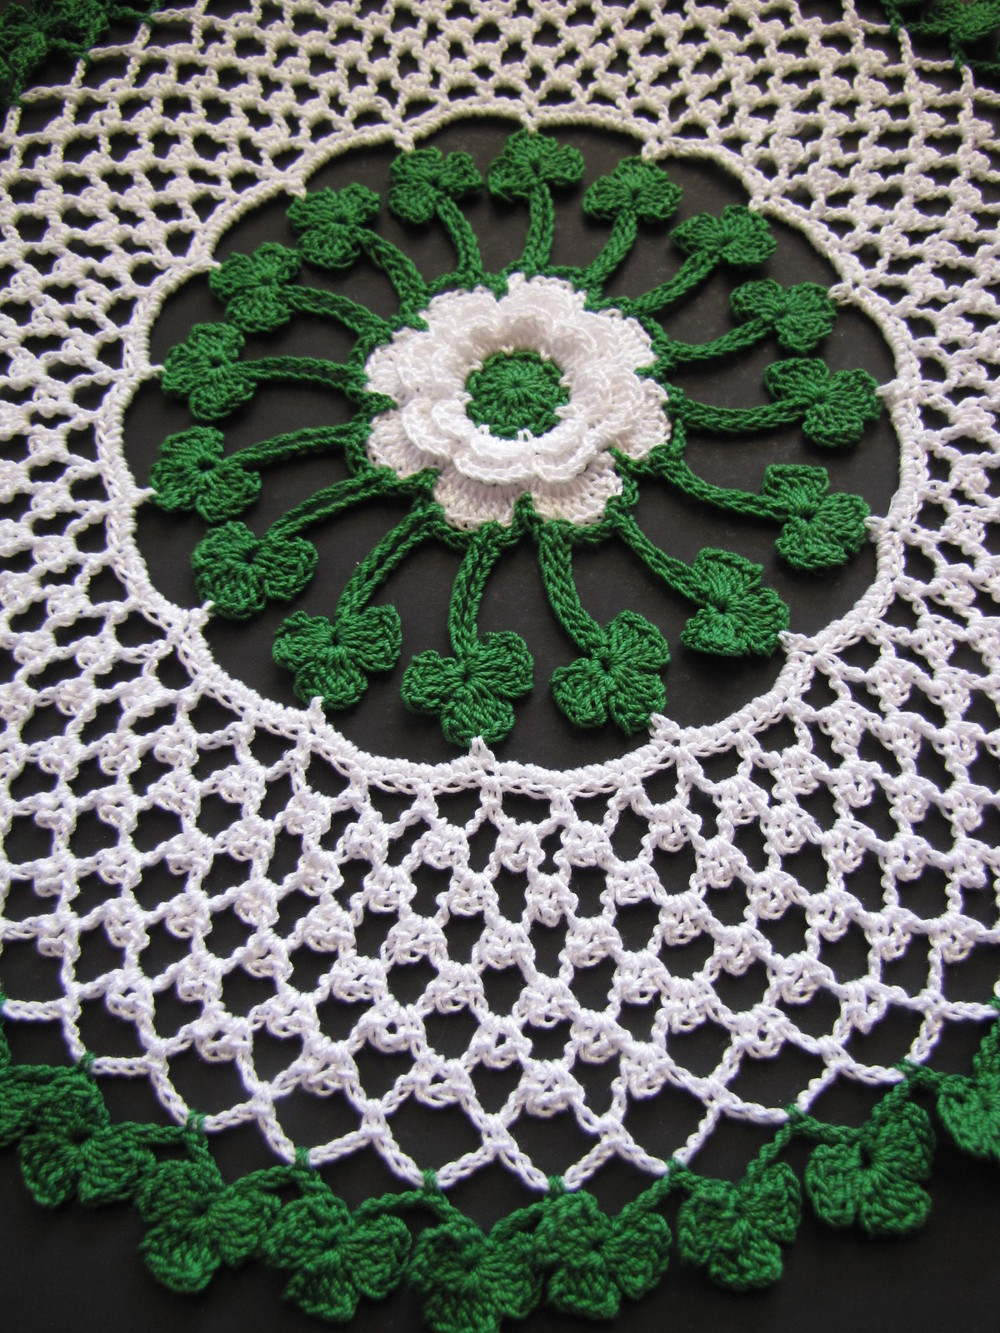 Free Crochet Doily Patterns for Beginners Luxury Irish Blessings Crochet Doily Of Wonderful 50 Models Free Crochet Doily Patterns for Beginners